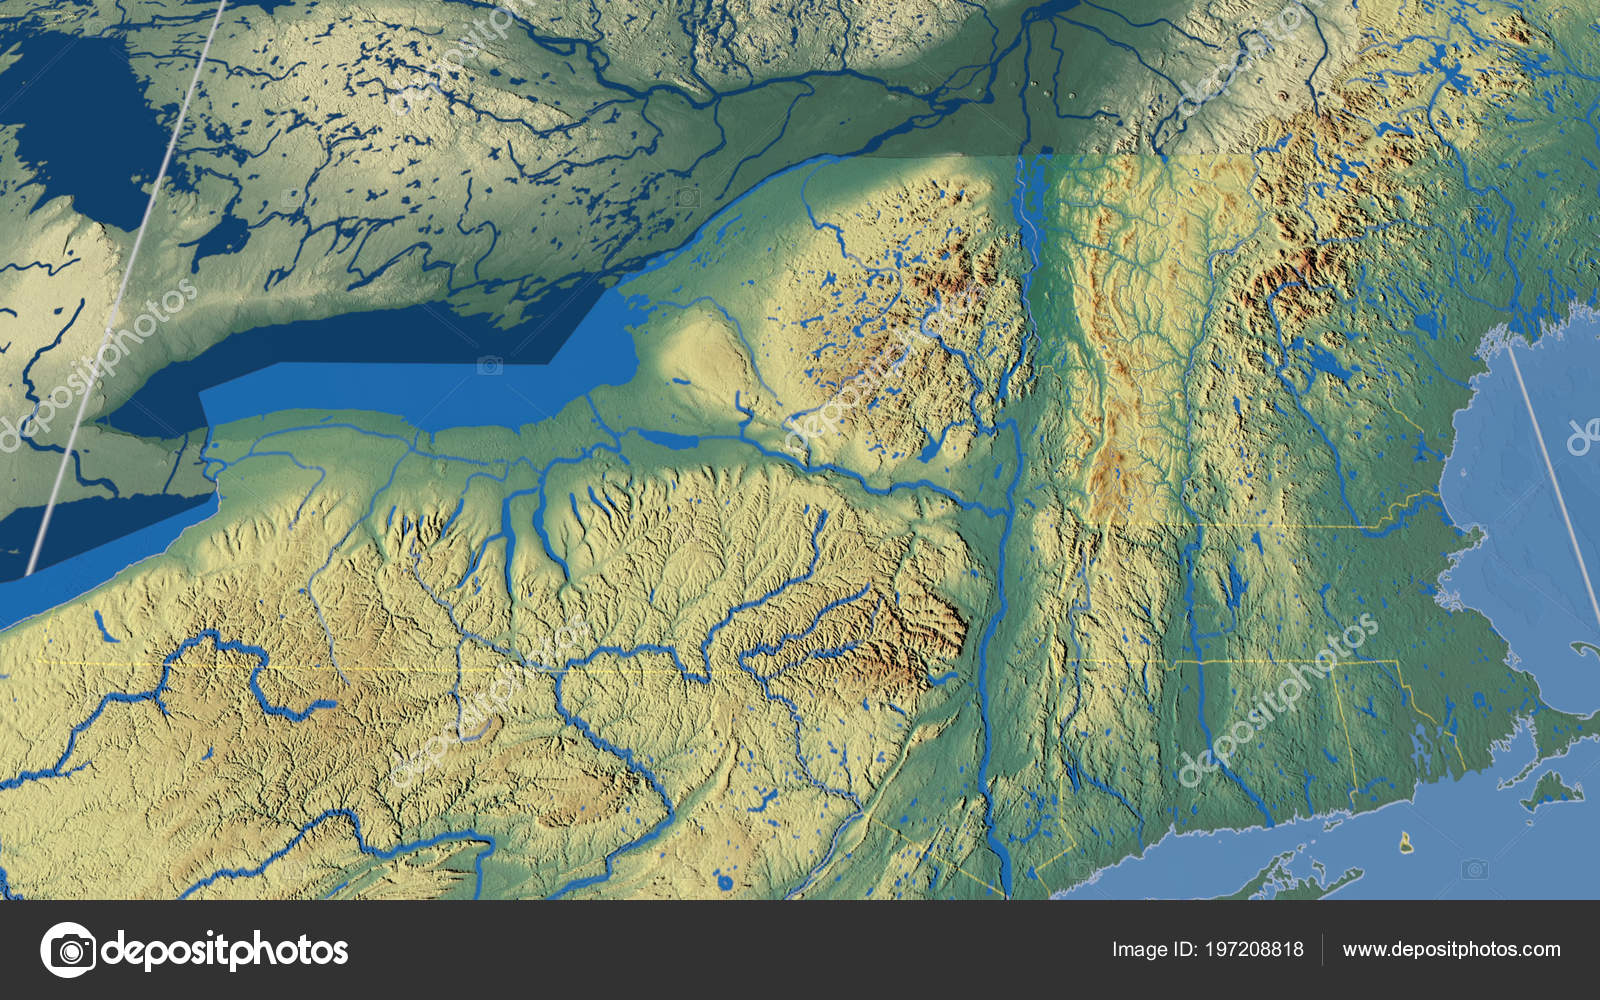 Relief Map Of United States.Vermont Region United States Outlined Topographic Relief Map Stock